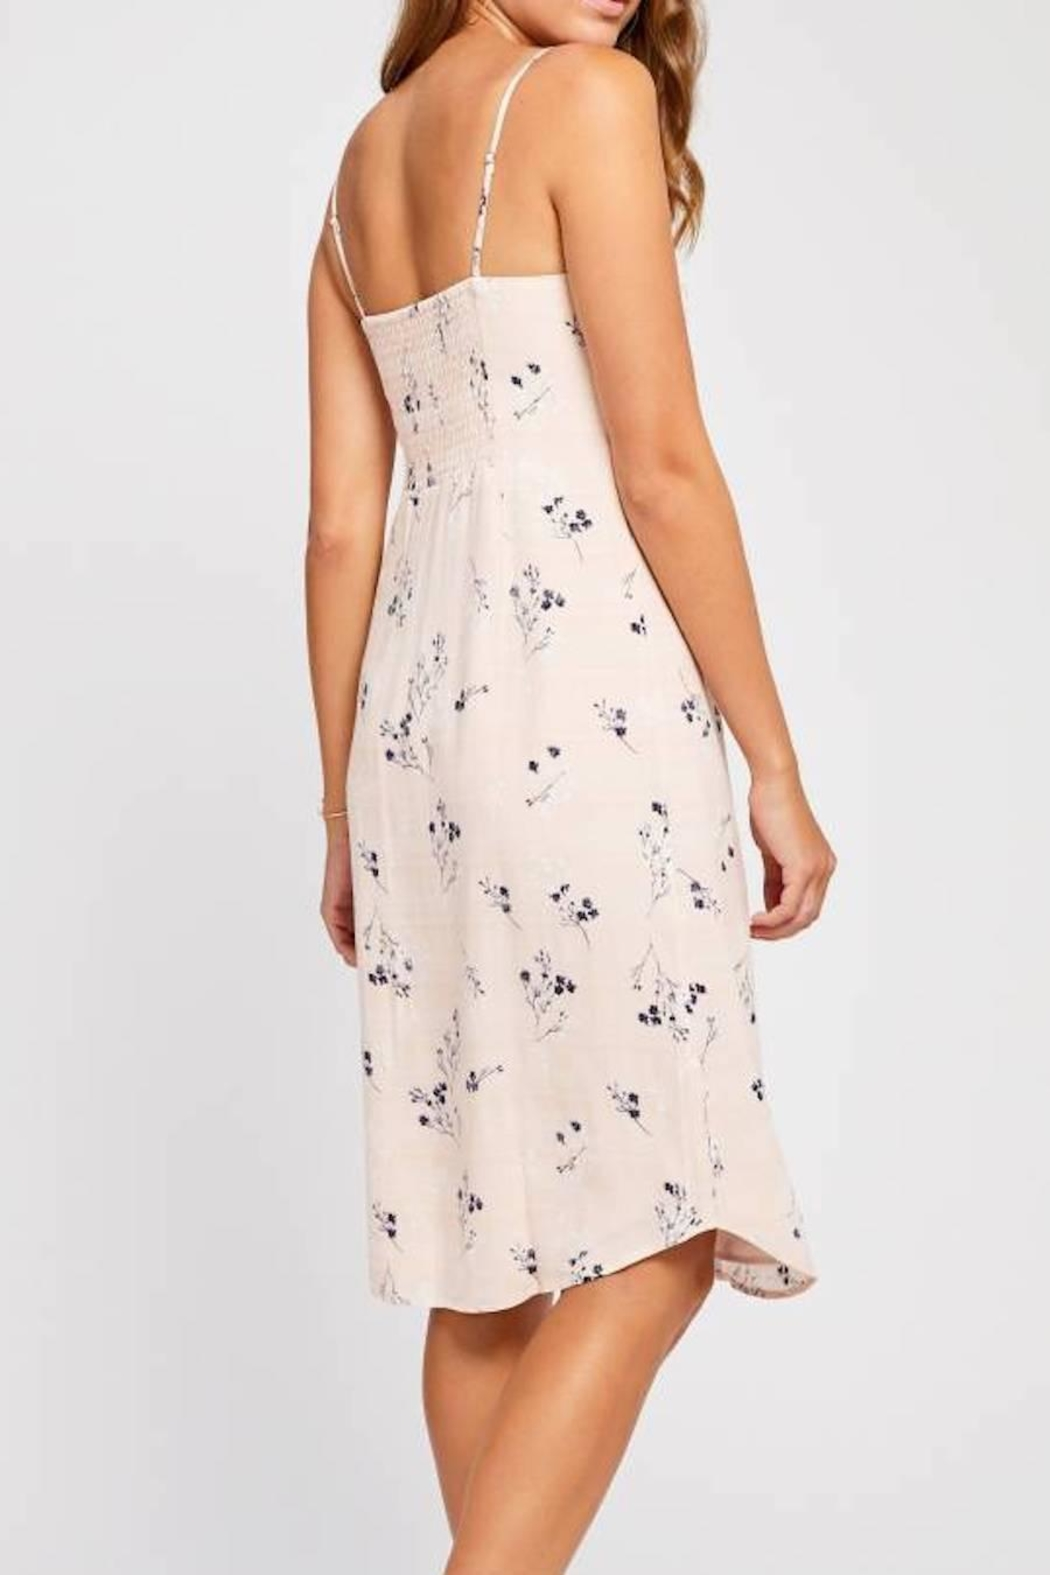 Gentle Fawn Mikaela Dress - Side Cropped Image